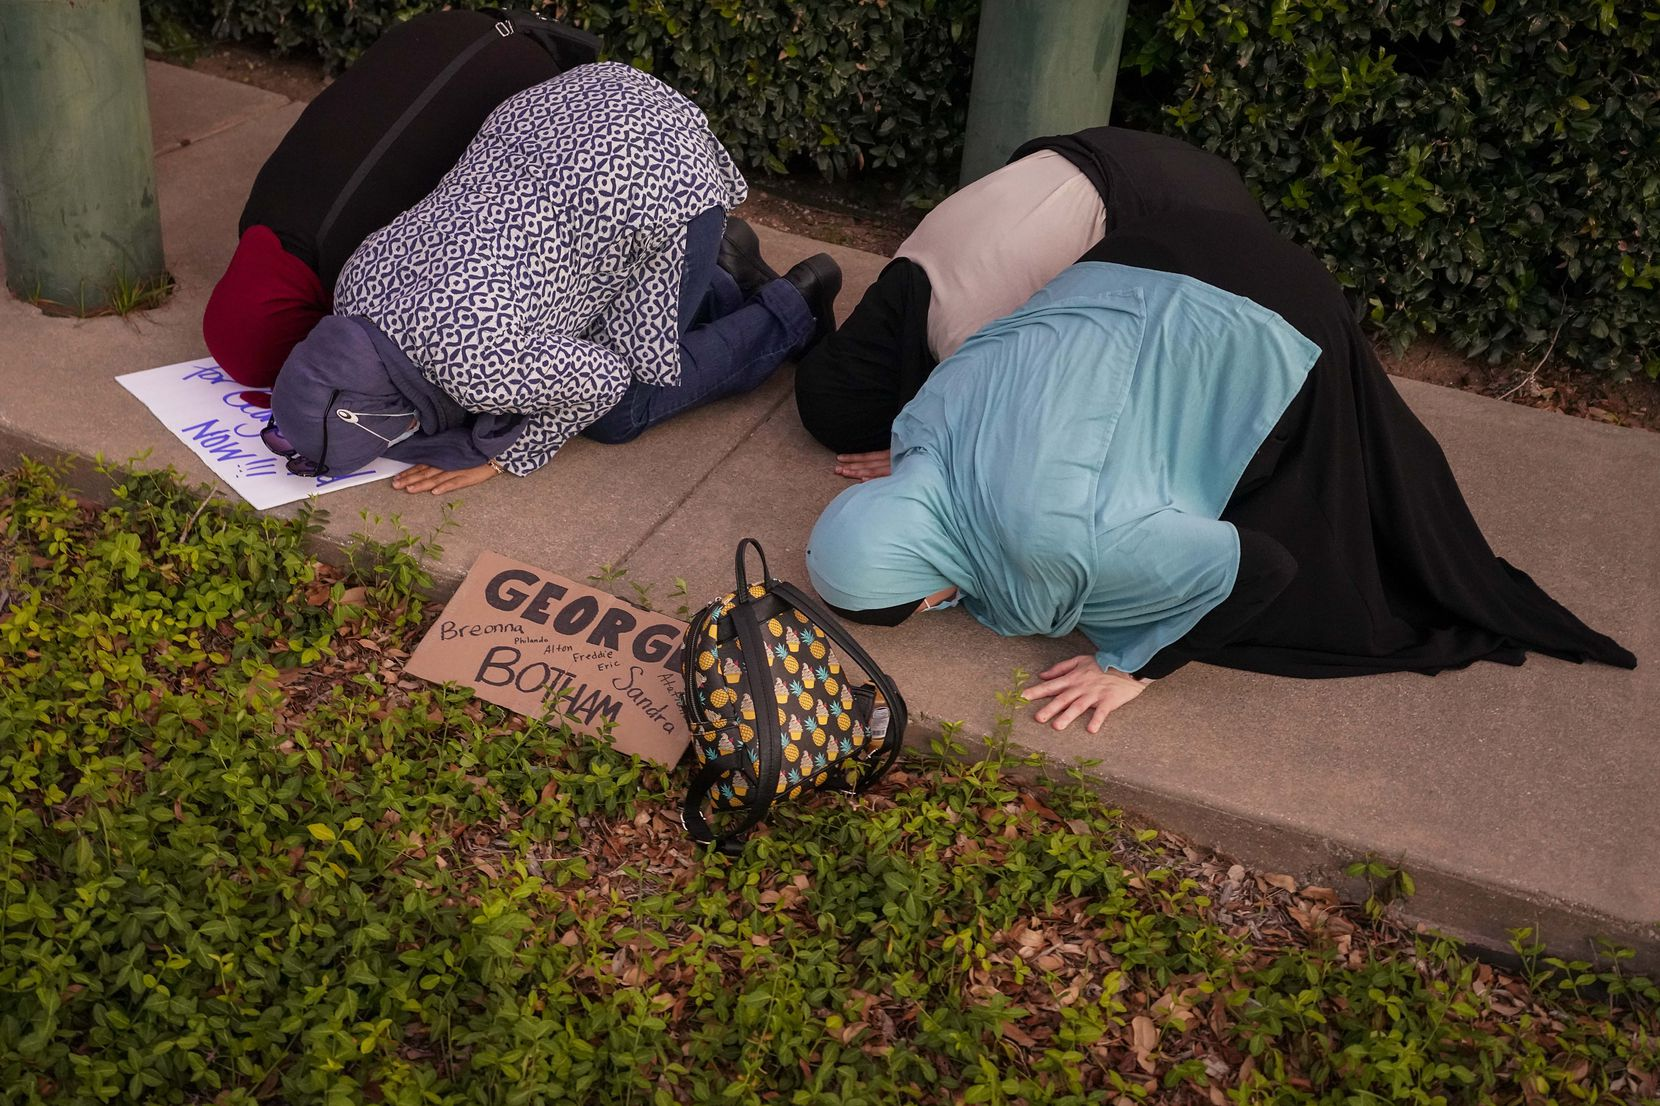 A group of muslim women steps aside from the crowd and puts down their protest signs to kneel in prayer during a rally against police brutality at the Dallas Police Headquarters on Friday, May 29, 2020, in Dallas.